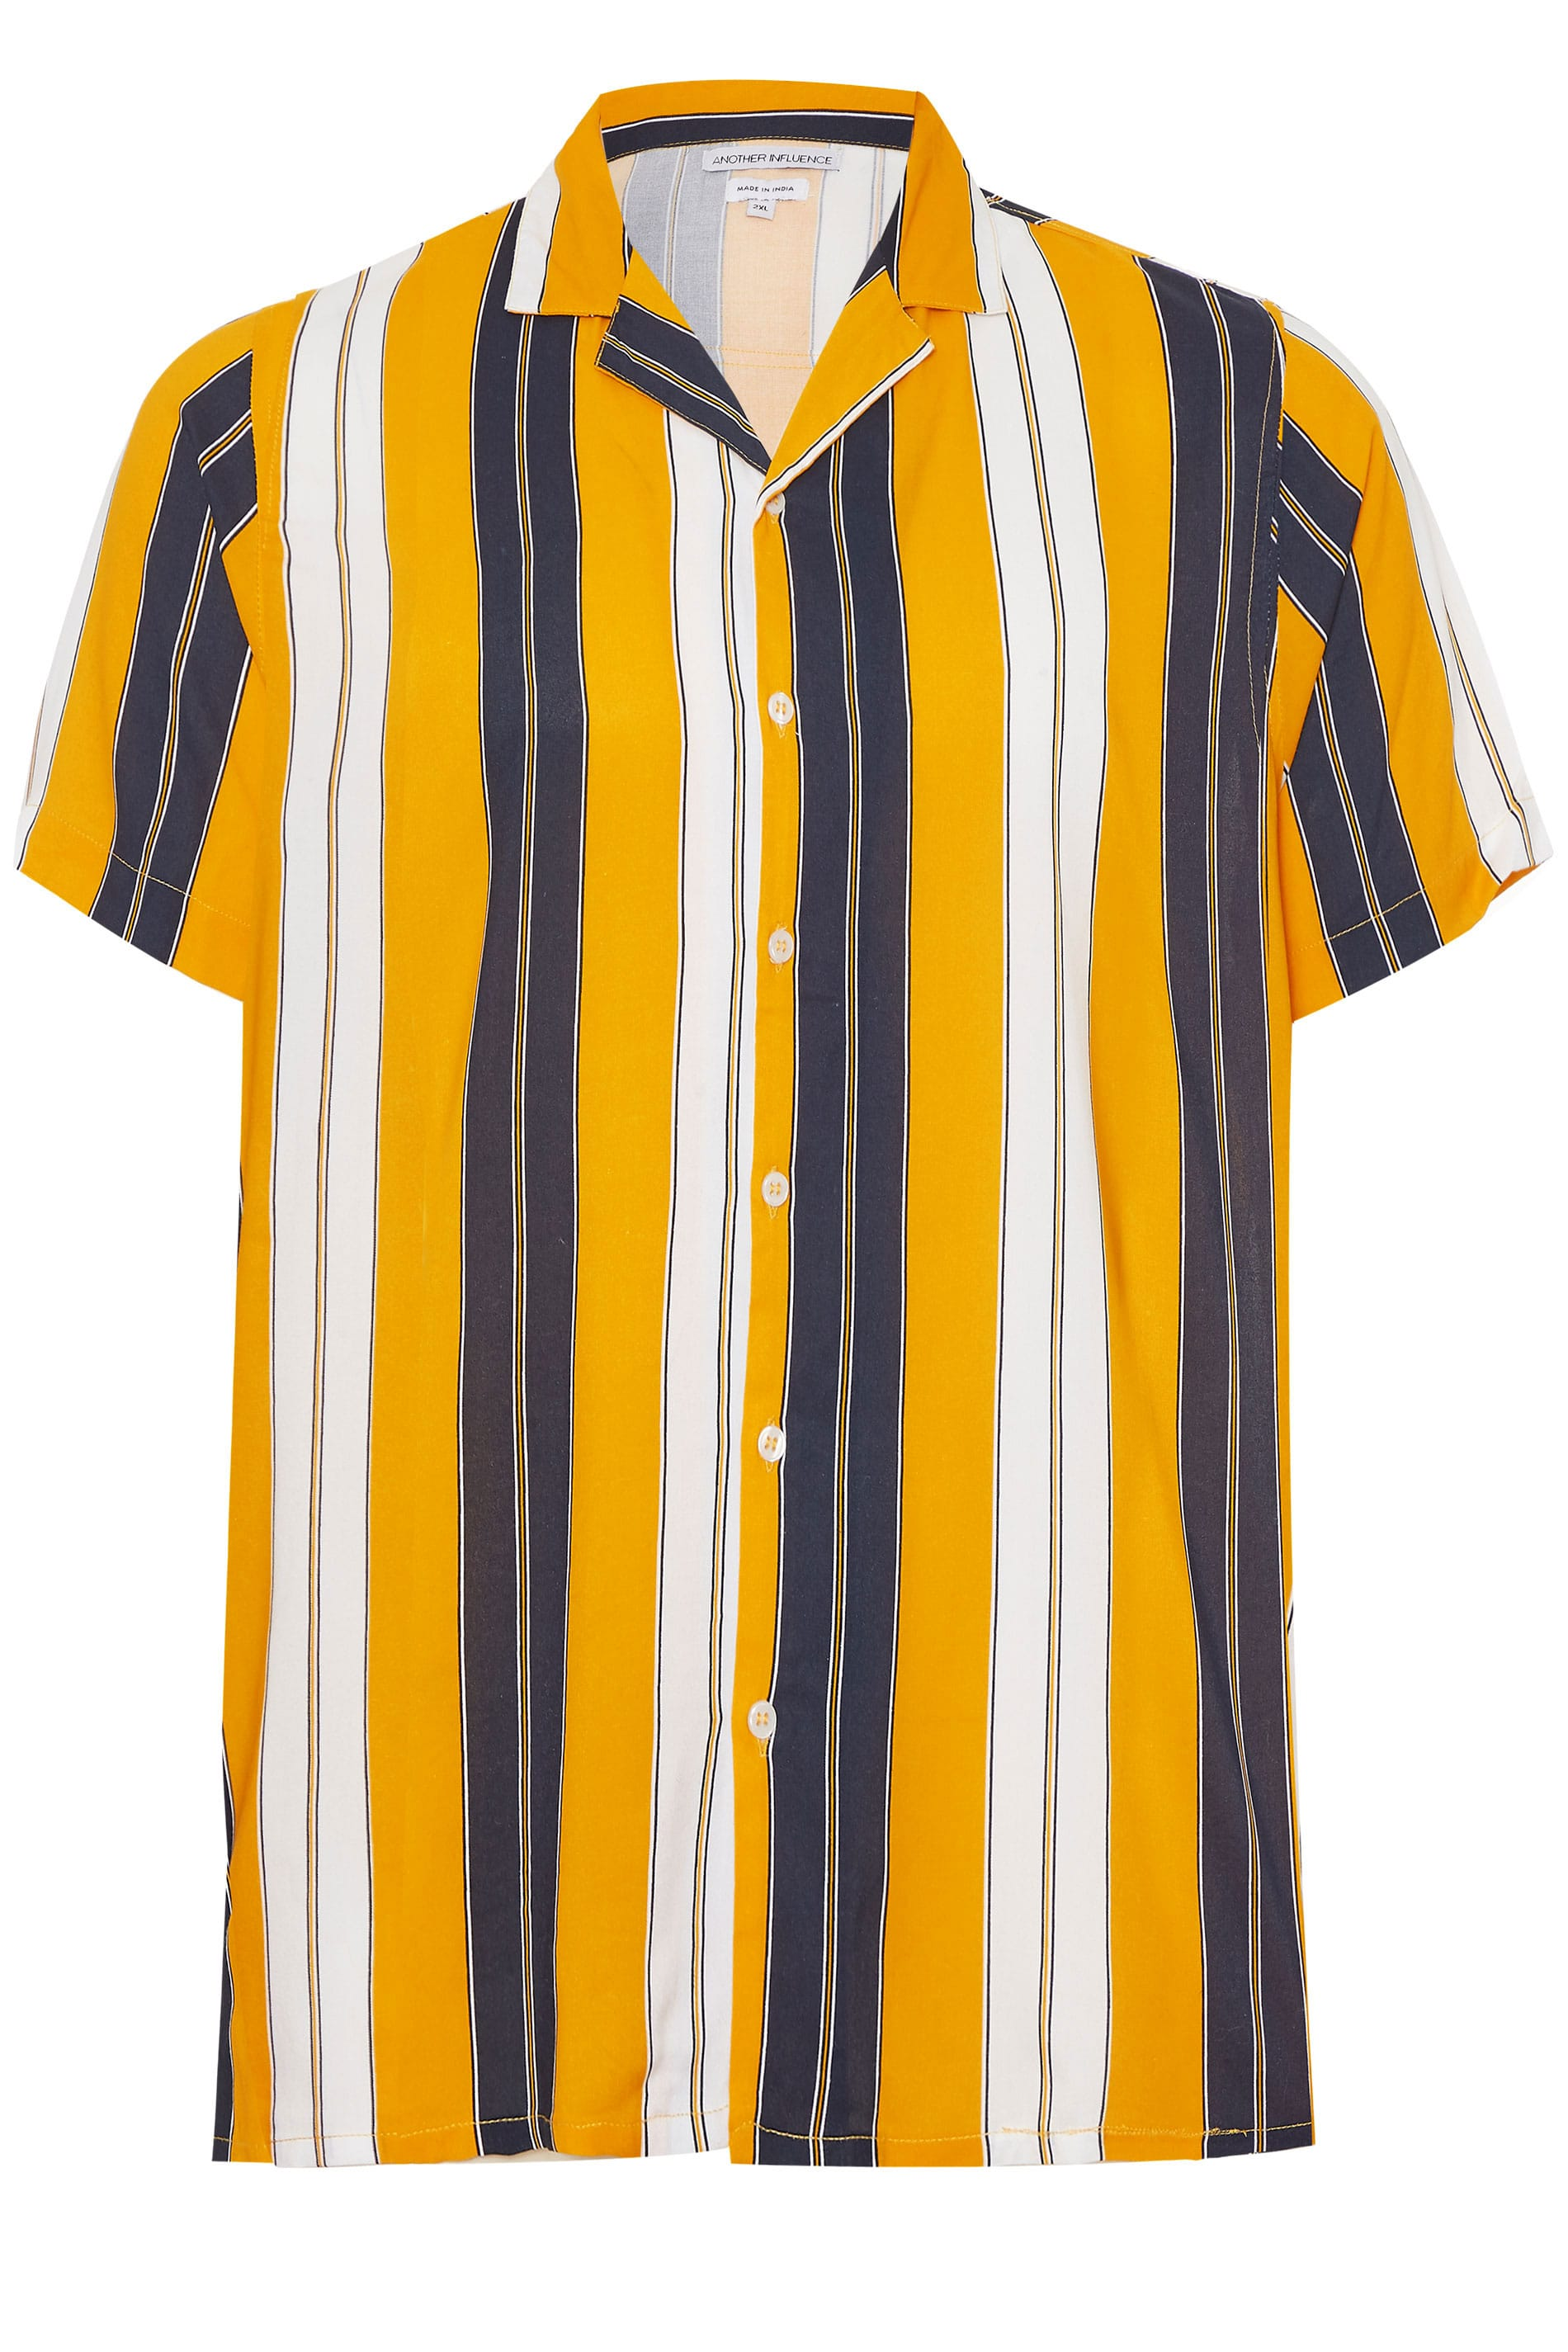 ANOTHER INFLUENCE Orange & Navy Striped Shirt